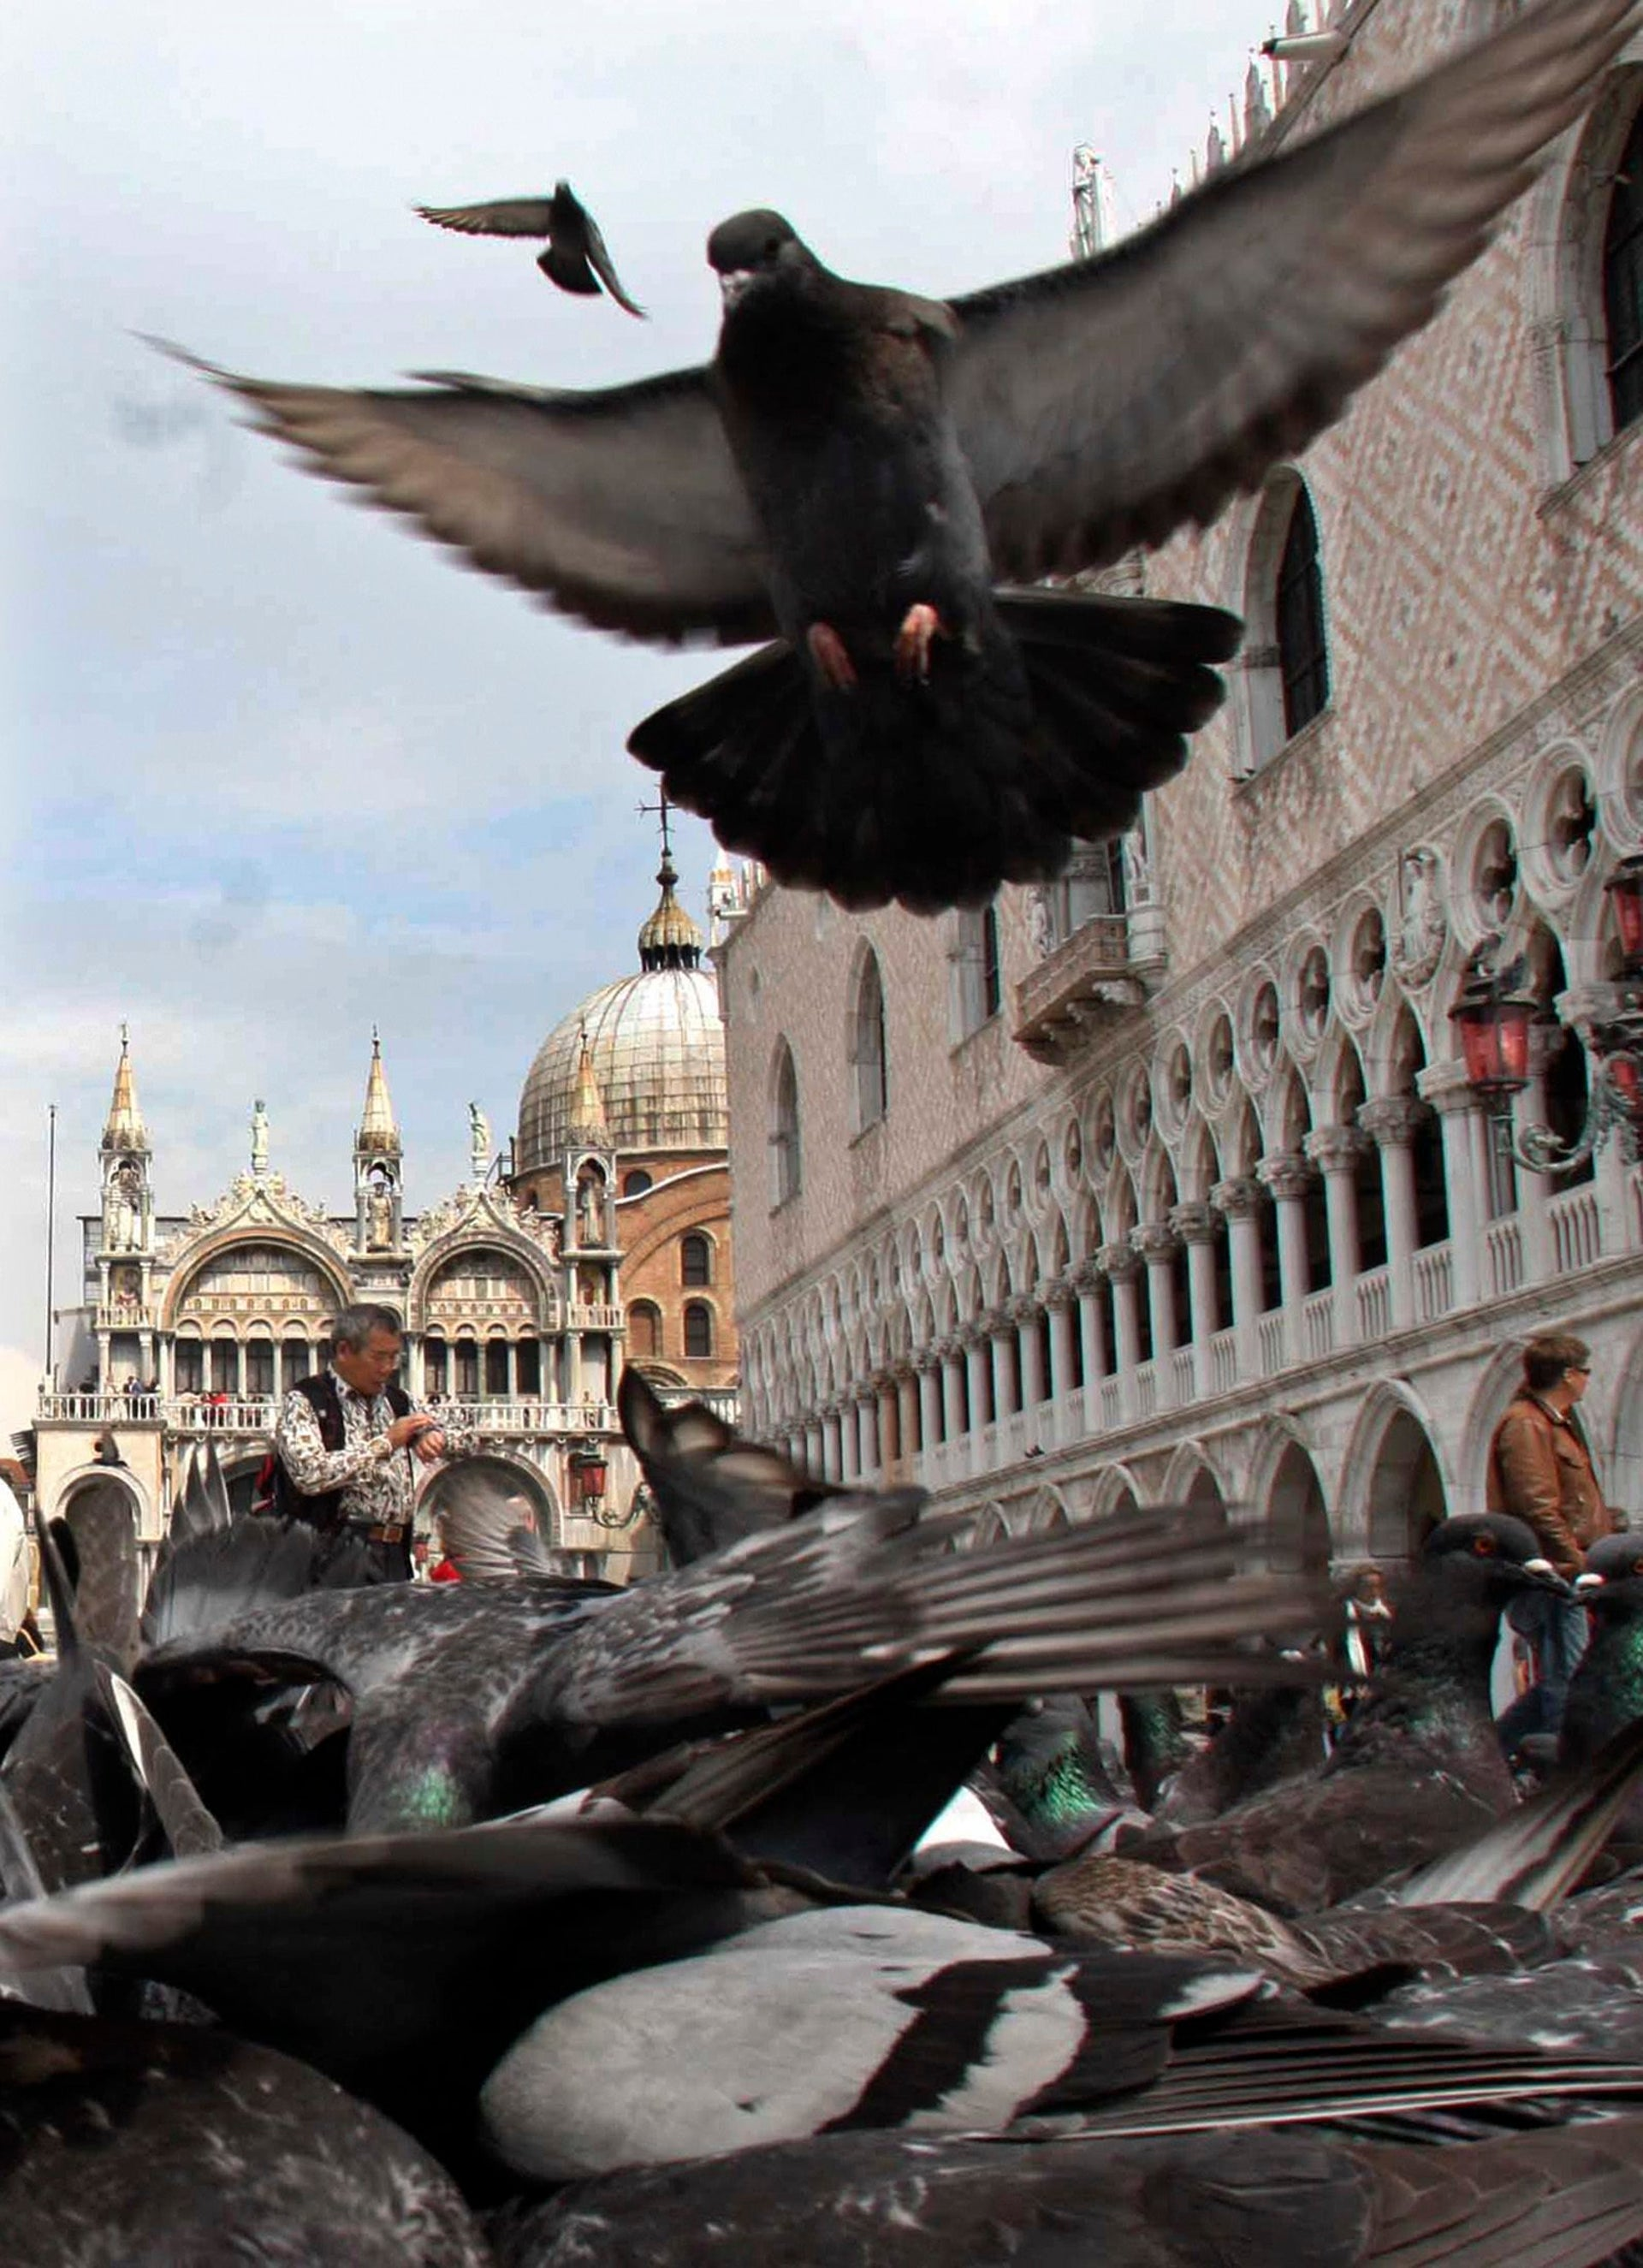 Pigeons swoop down as tourists feed them corn in Saint Mark's square in Venice.